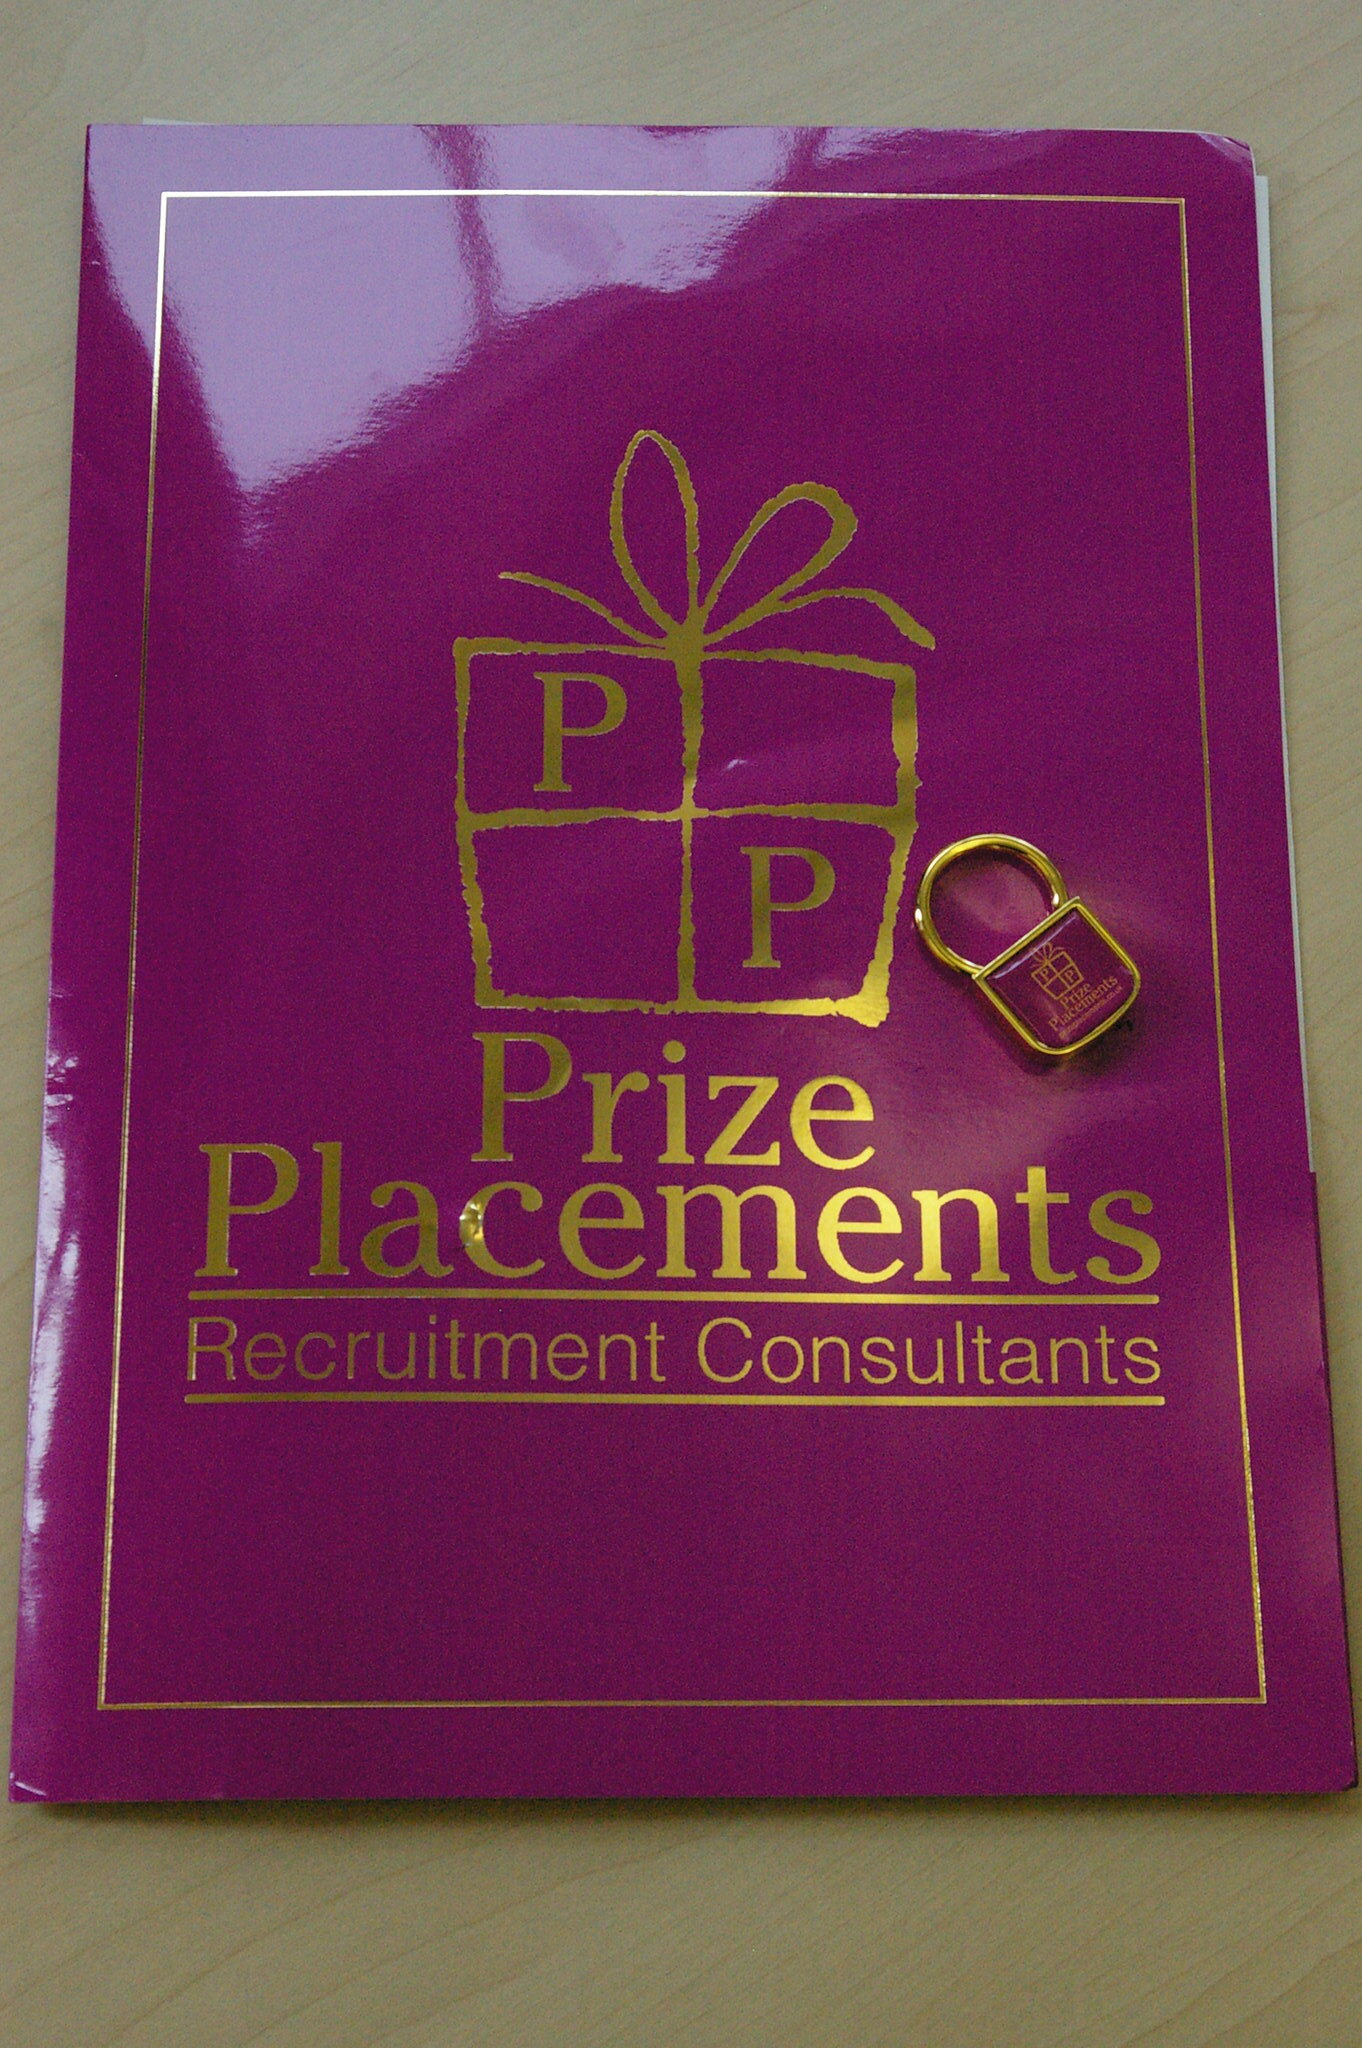 Prize Placements - lousy graphic design